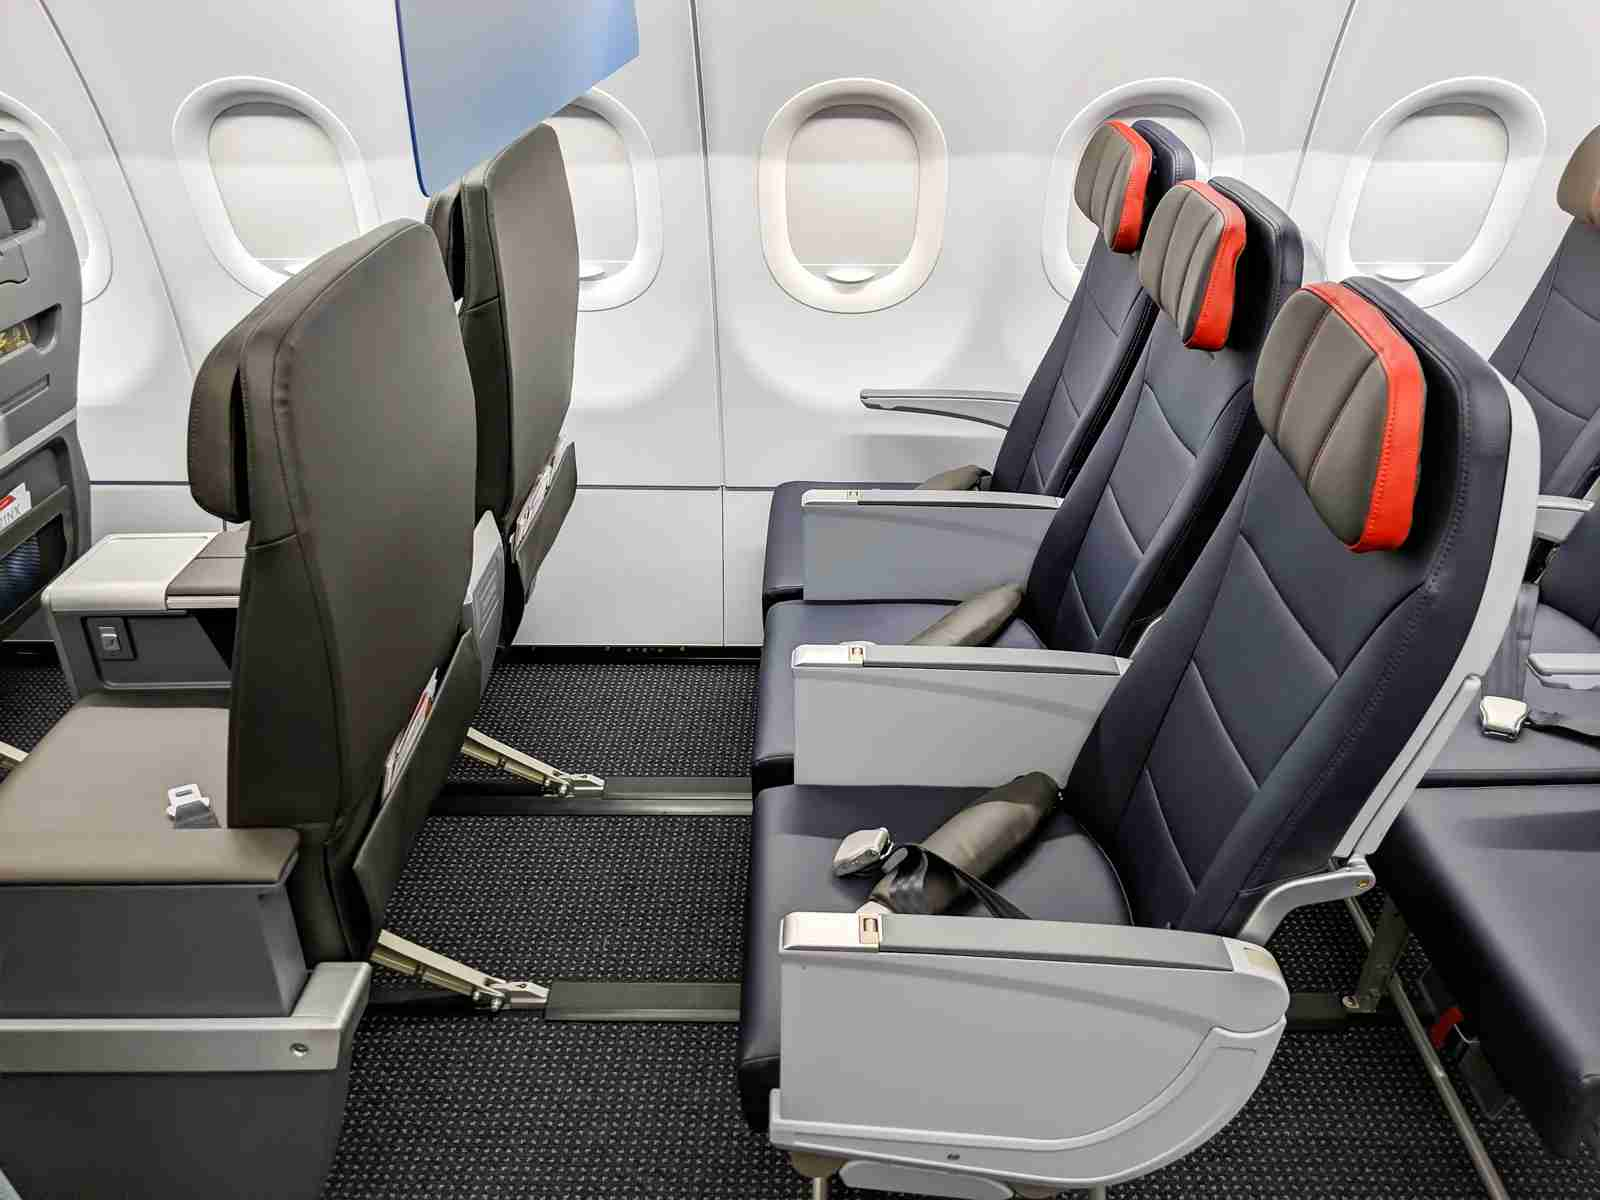 The front row of economy on the American Airline A321neo measures 40 inches of pitch -- and you can store a bag under the first class seat in front of you. (Photo by JT Genter/The Points Guy)